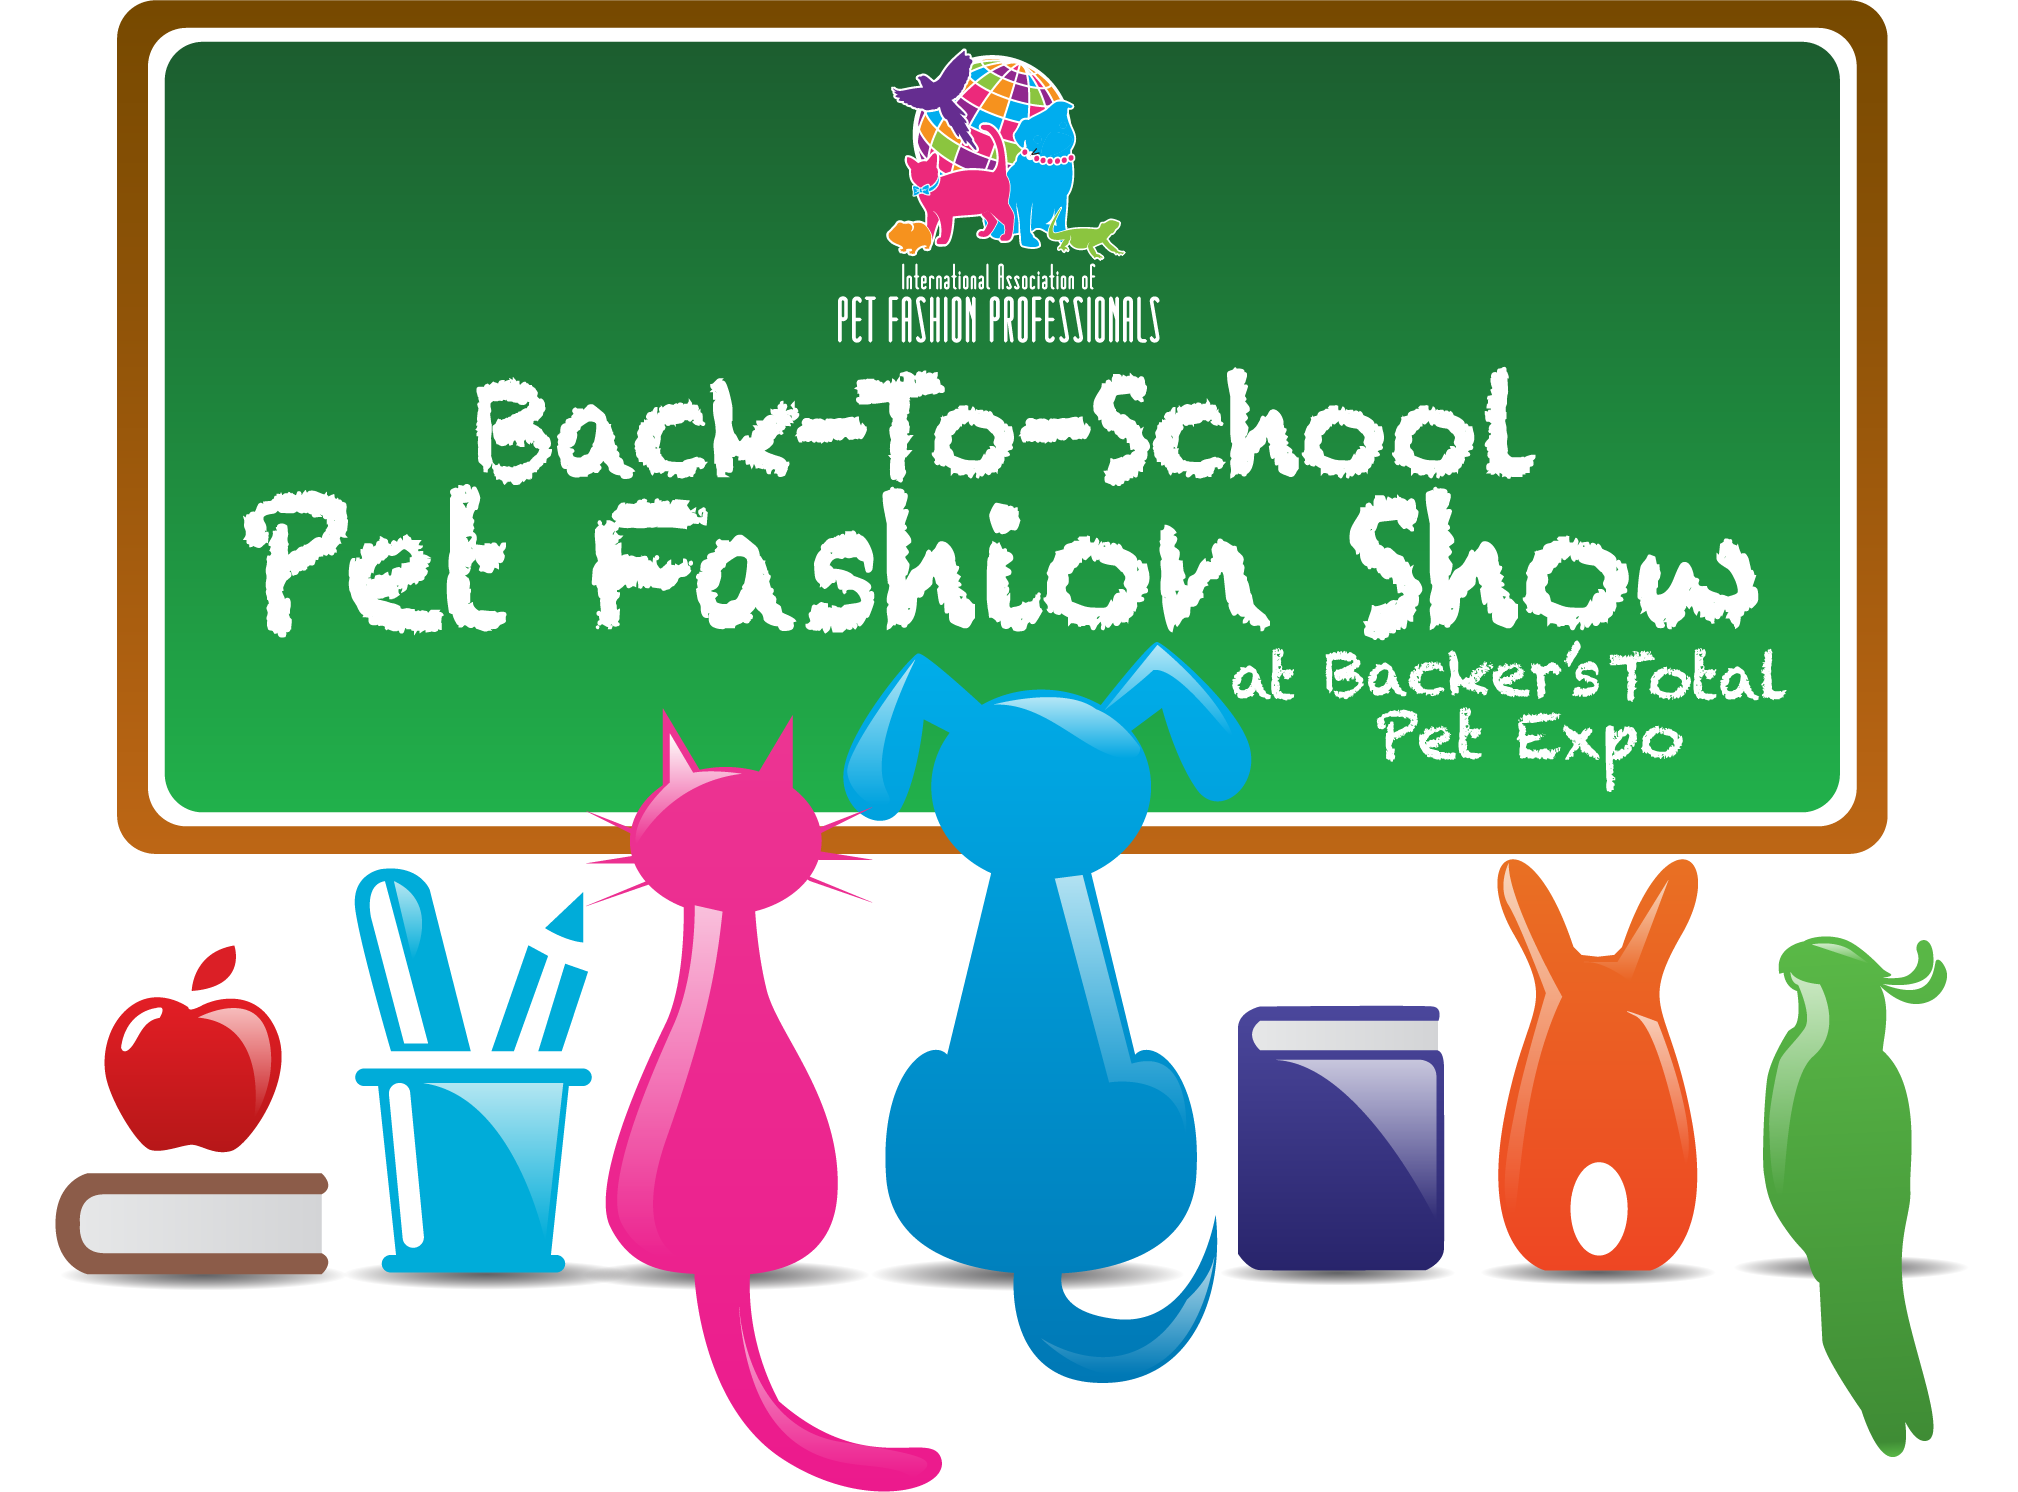 IAPFP-BacKToSchool-FashionShowFinal